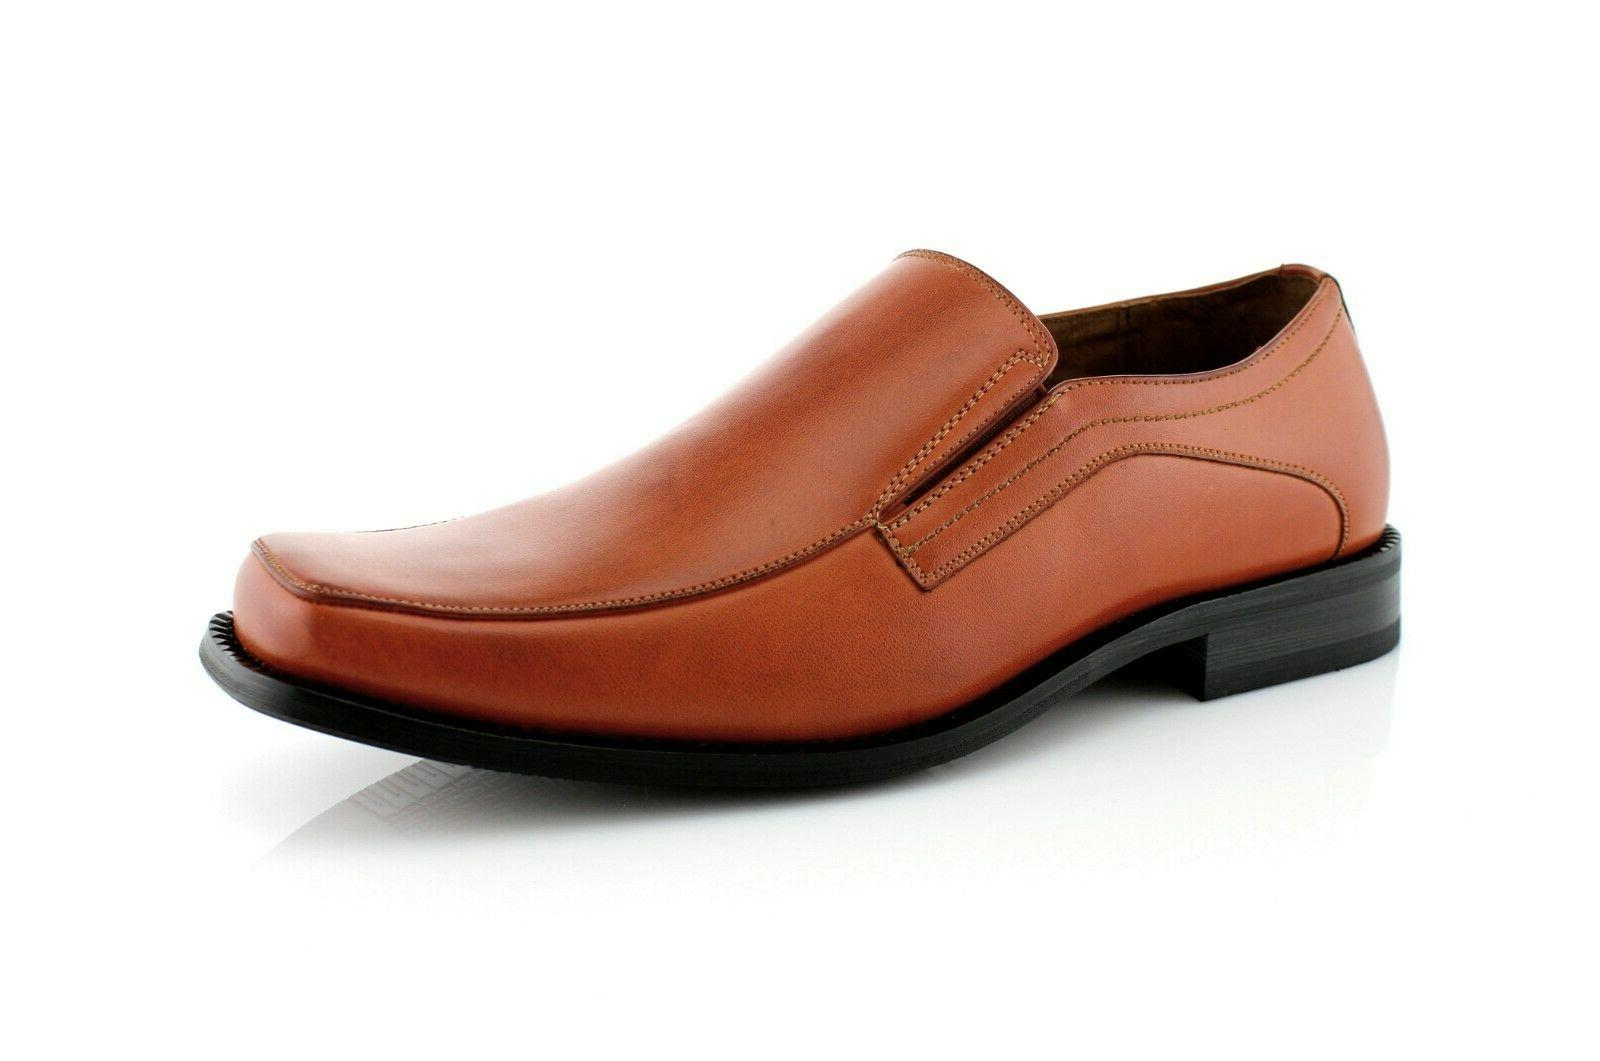 Men's Leather Dress Shoes Formal Loafers